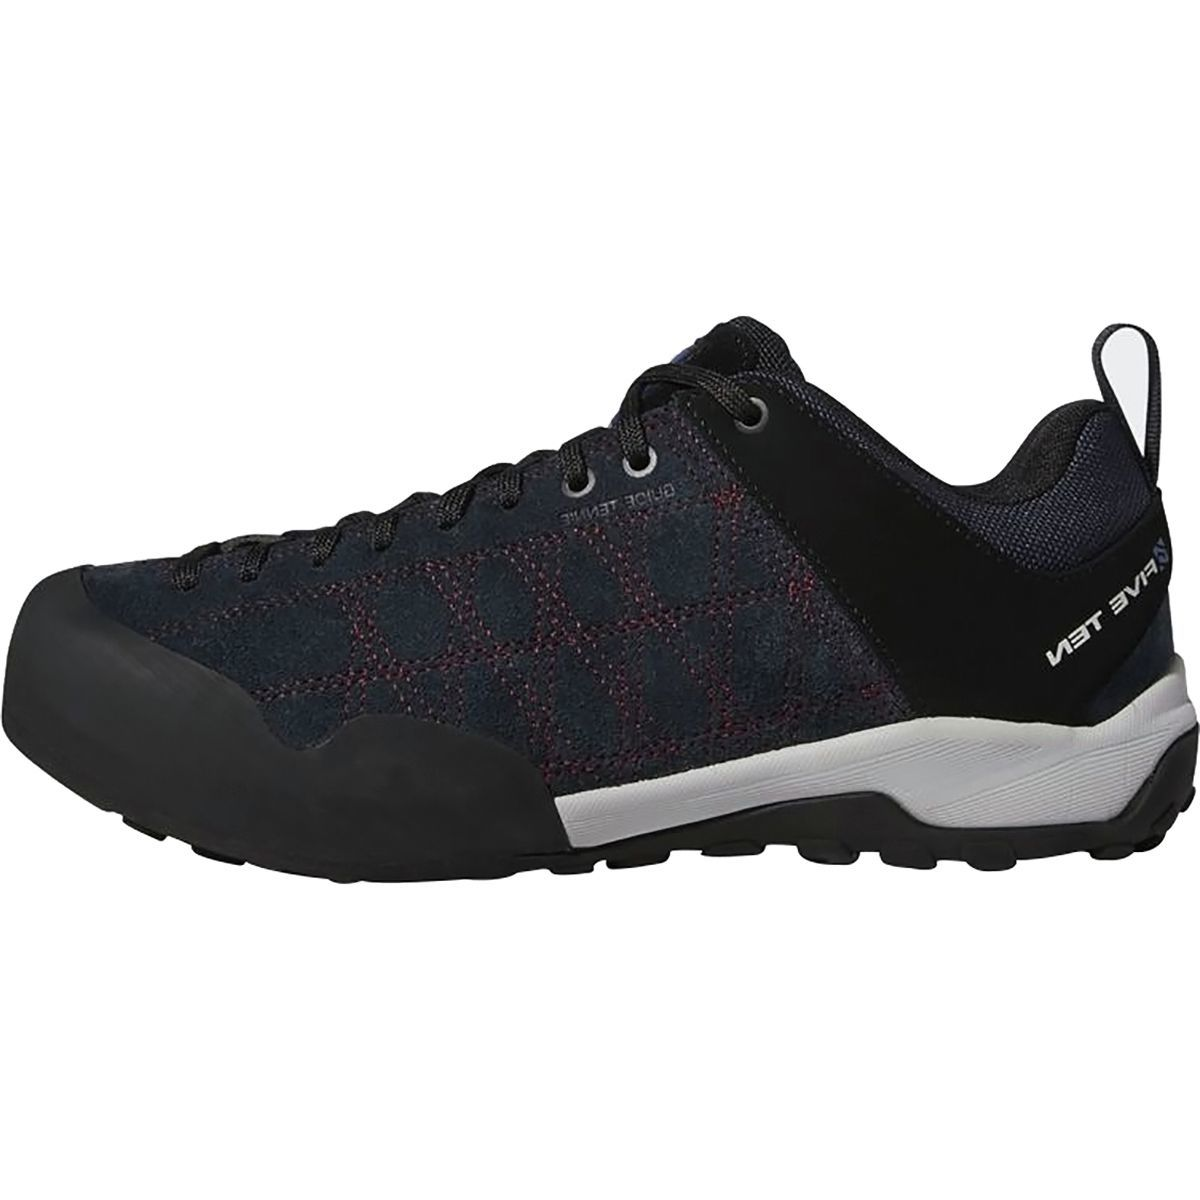 Five Ten Guide Tennie Approach Shoe - Women's